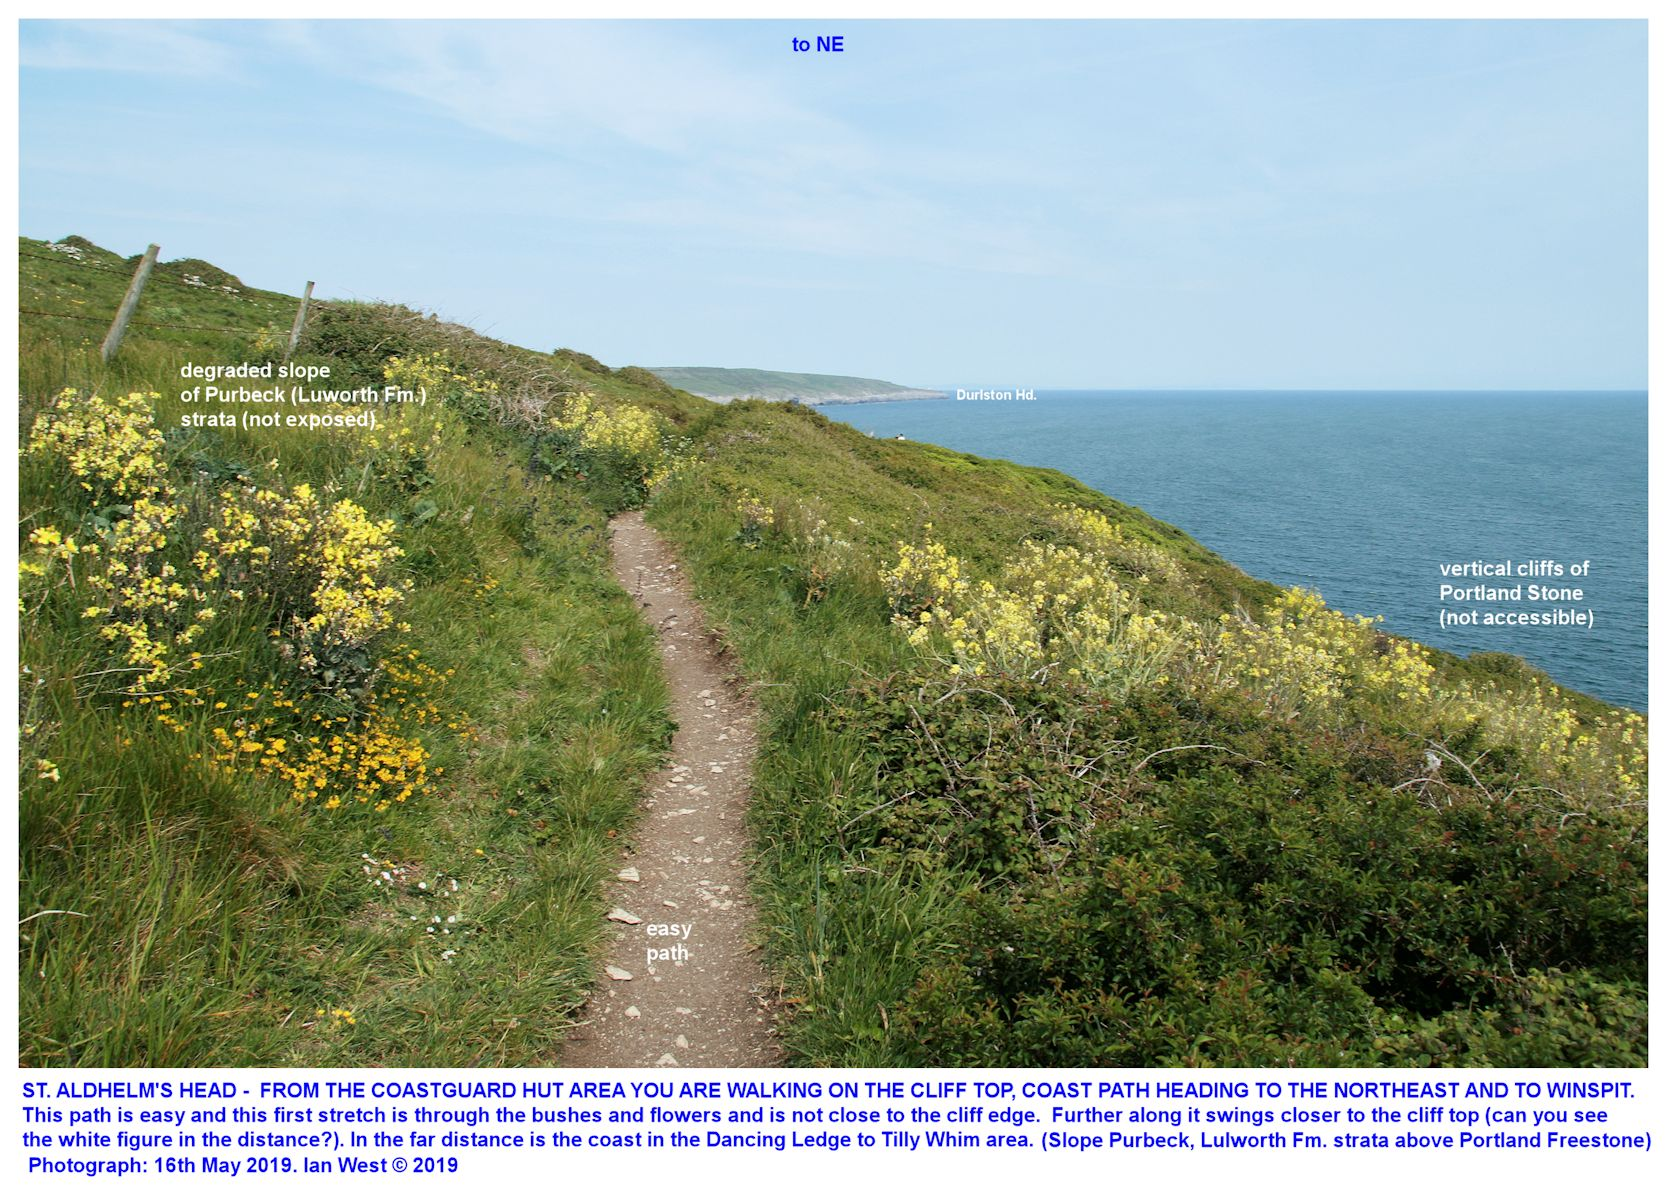 Footpath on the cliff top between the Coastguard Hut, St. Aldhelm's Head and northeast to Winpit